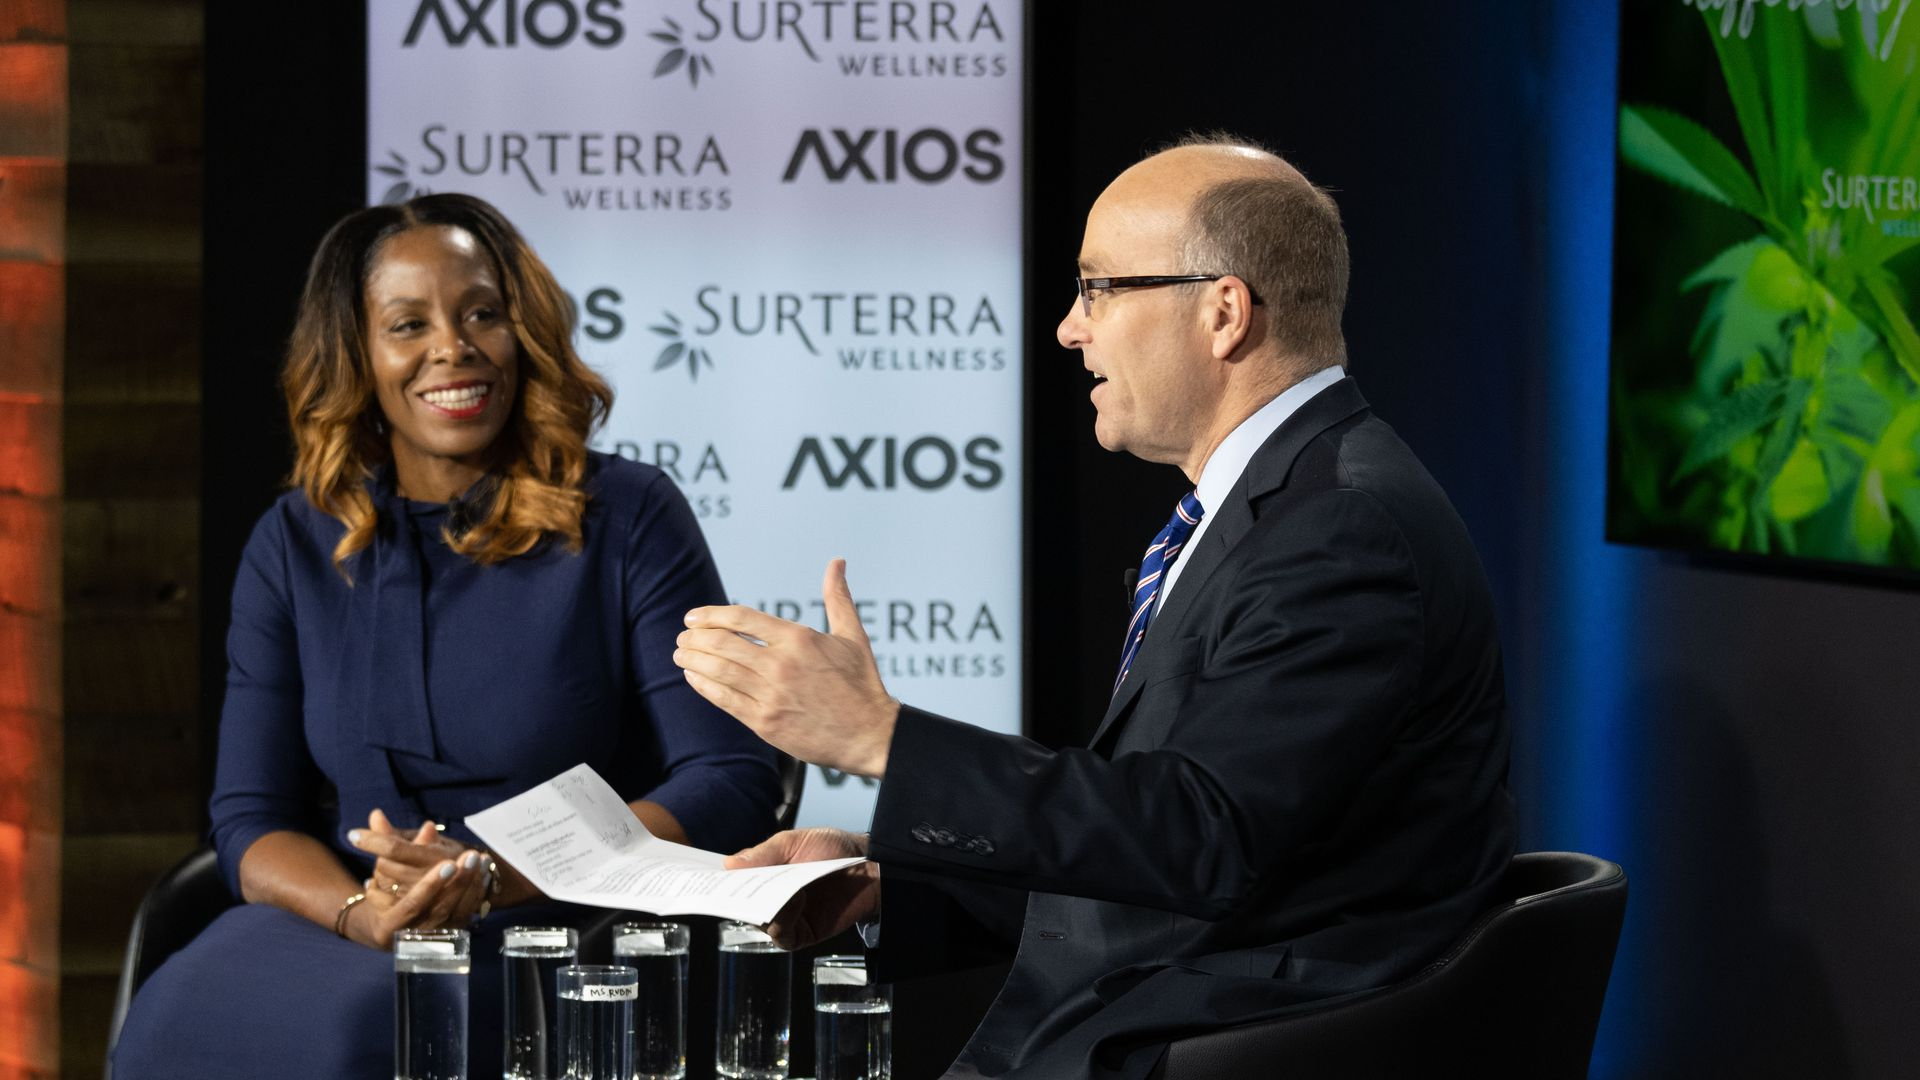 Rep. Stacey Plaskett in conversation with Axios' Mike Allen